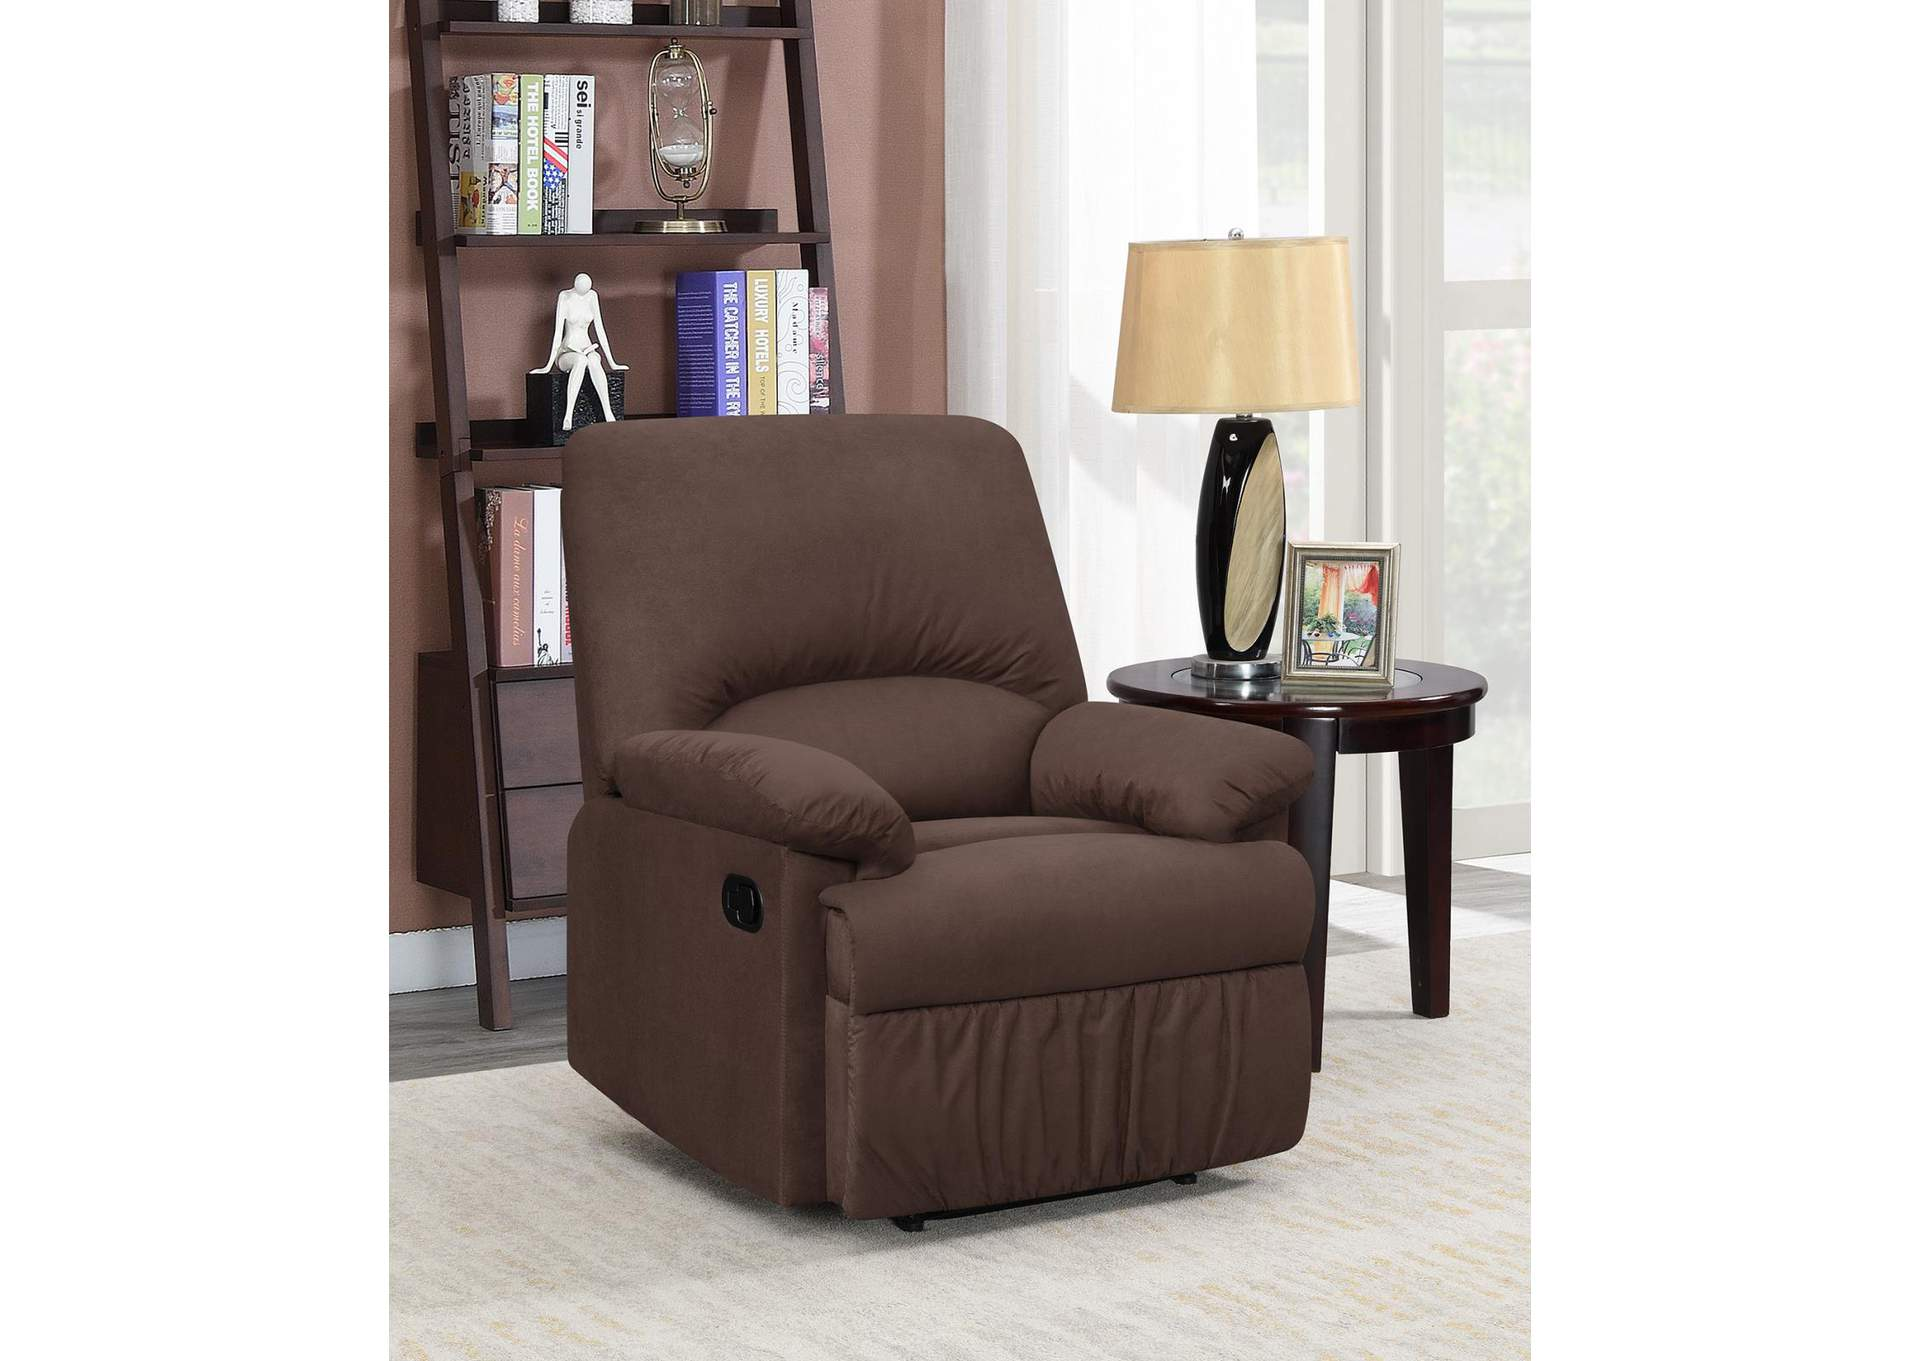 Rangitoto Casual Chocolate Motion Recliner,Coaster Furniture